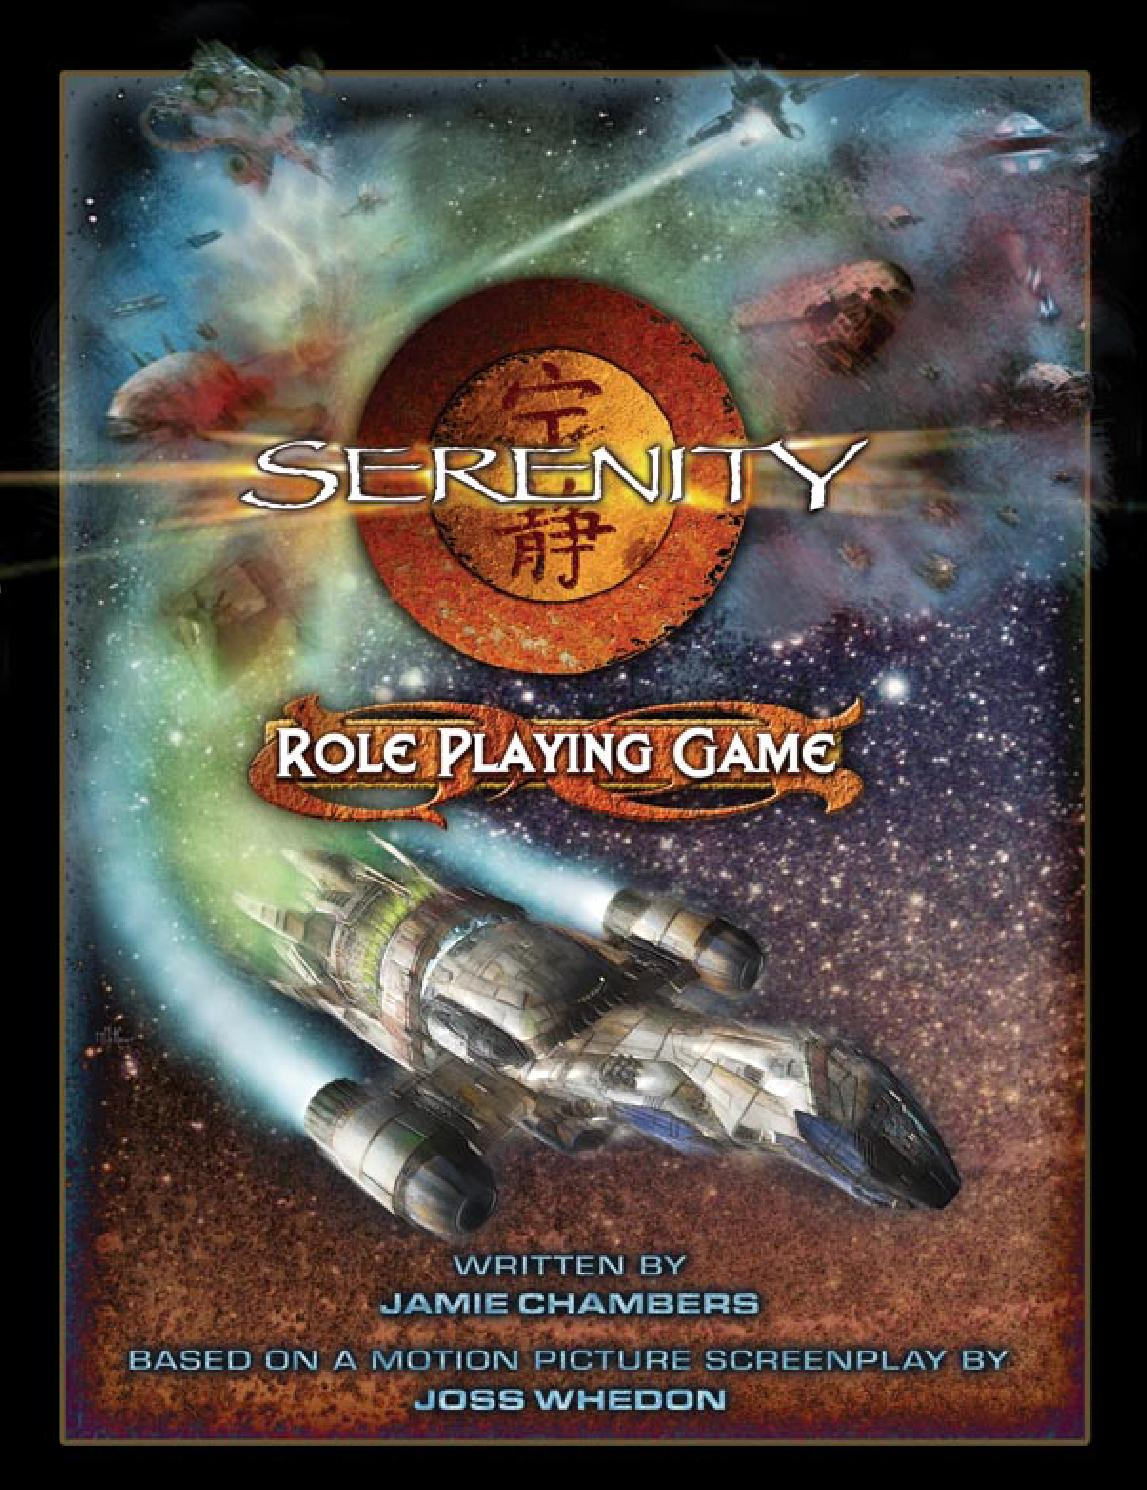 Serenity serenity role playing game by Daven Harris - issuu